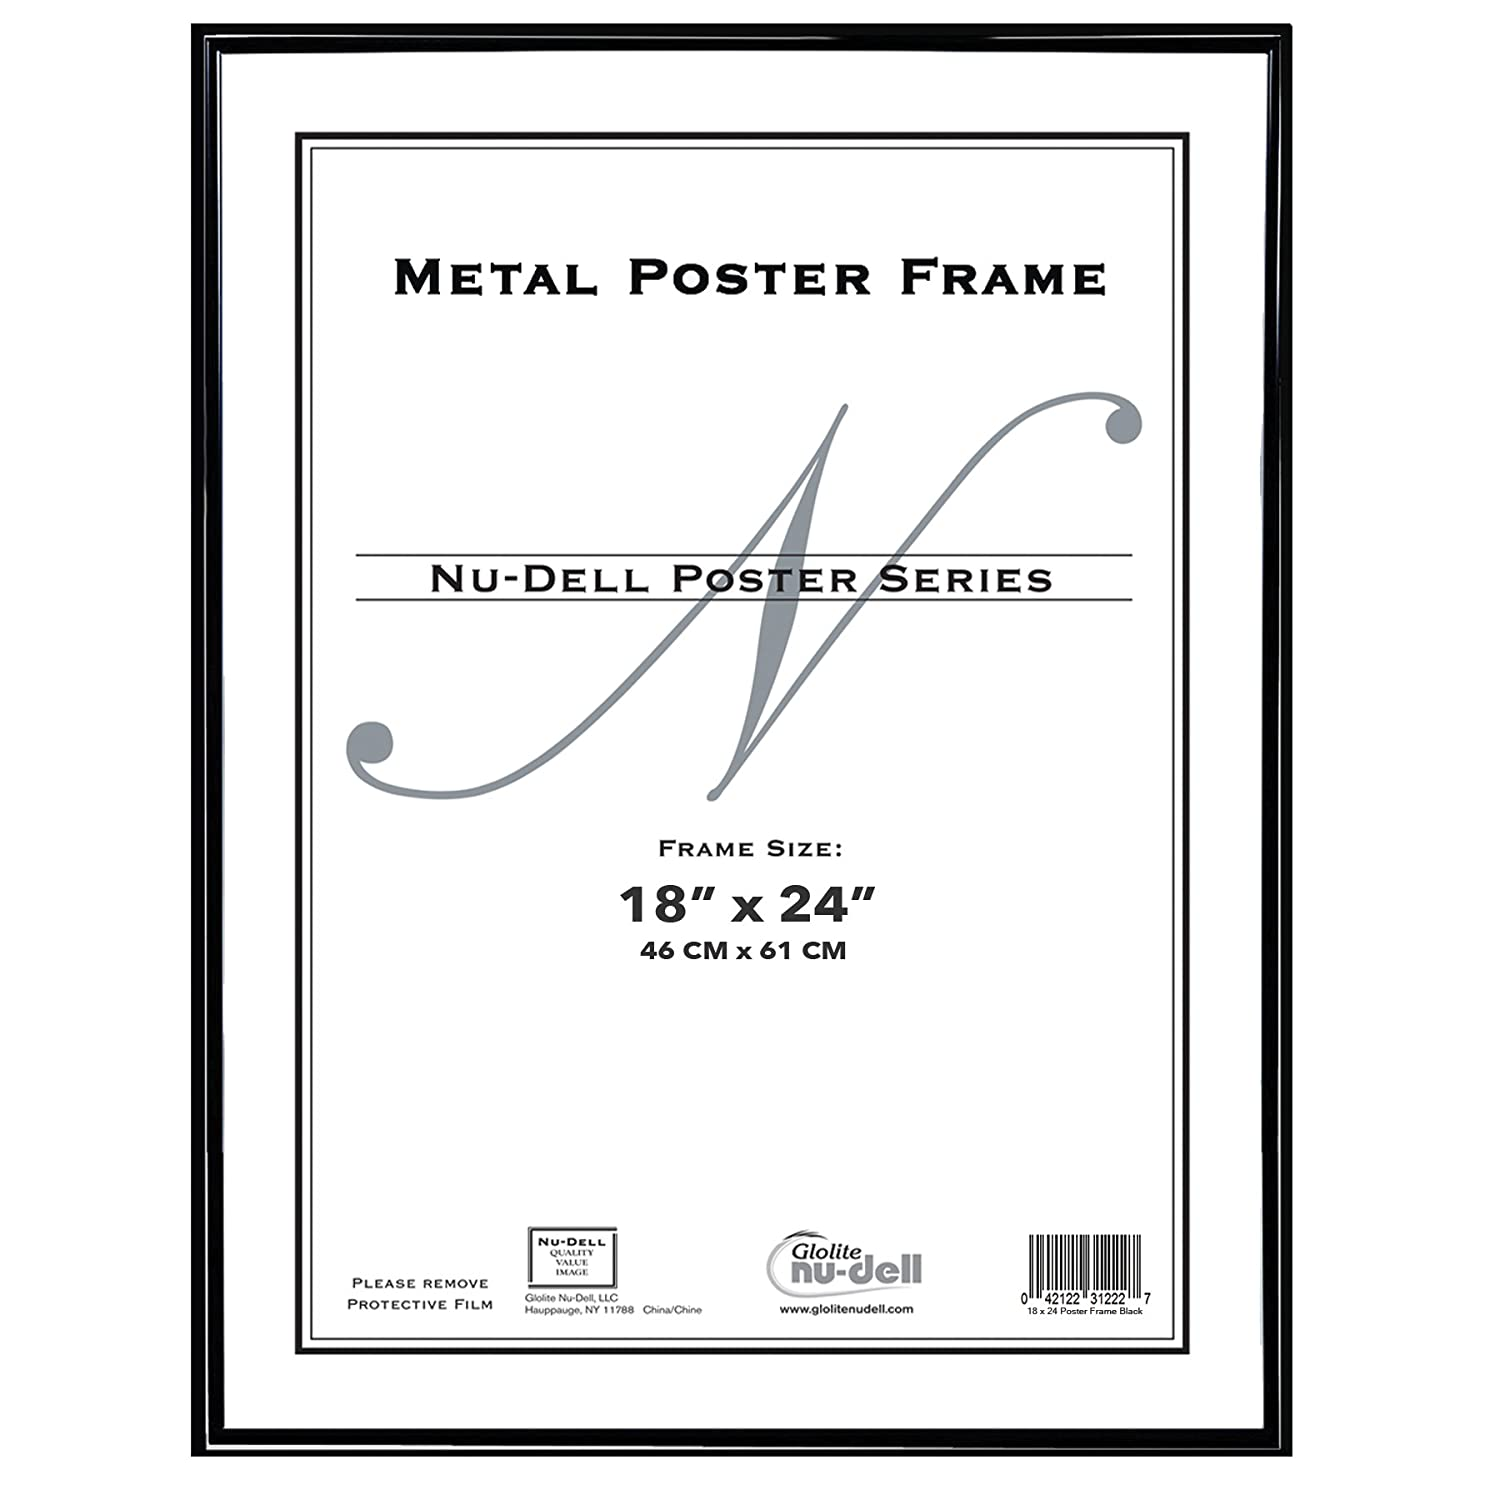 Amazon.com: NuDell 31222 Metal Poster Frame, Plastic Face, 18 x 24 ...